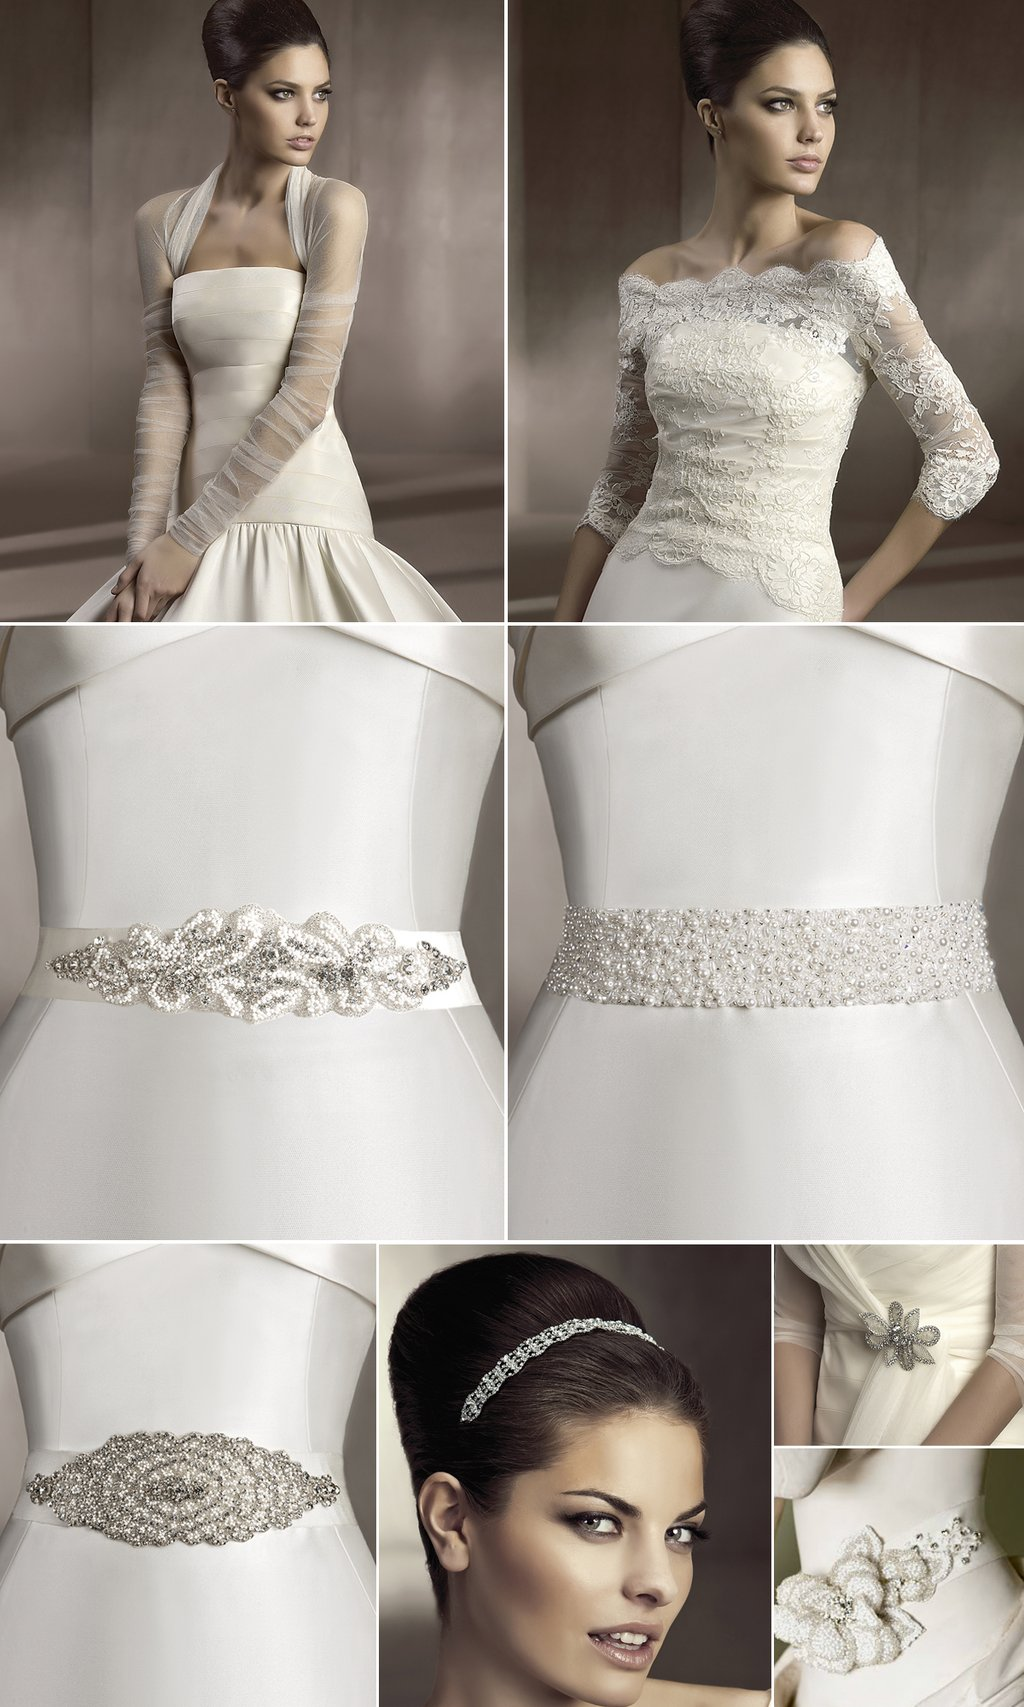 Bridesmaid Dresses and Accessories for Wedding